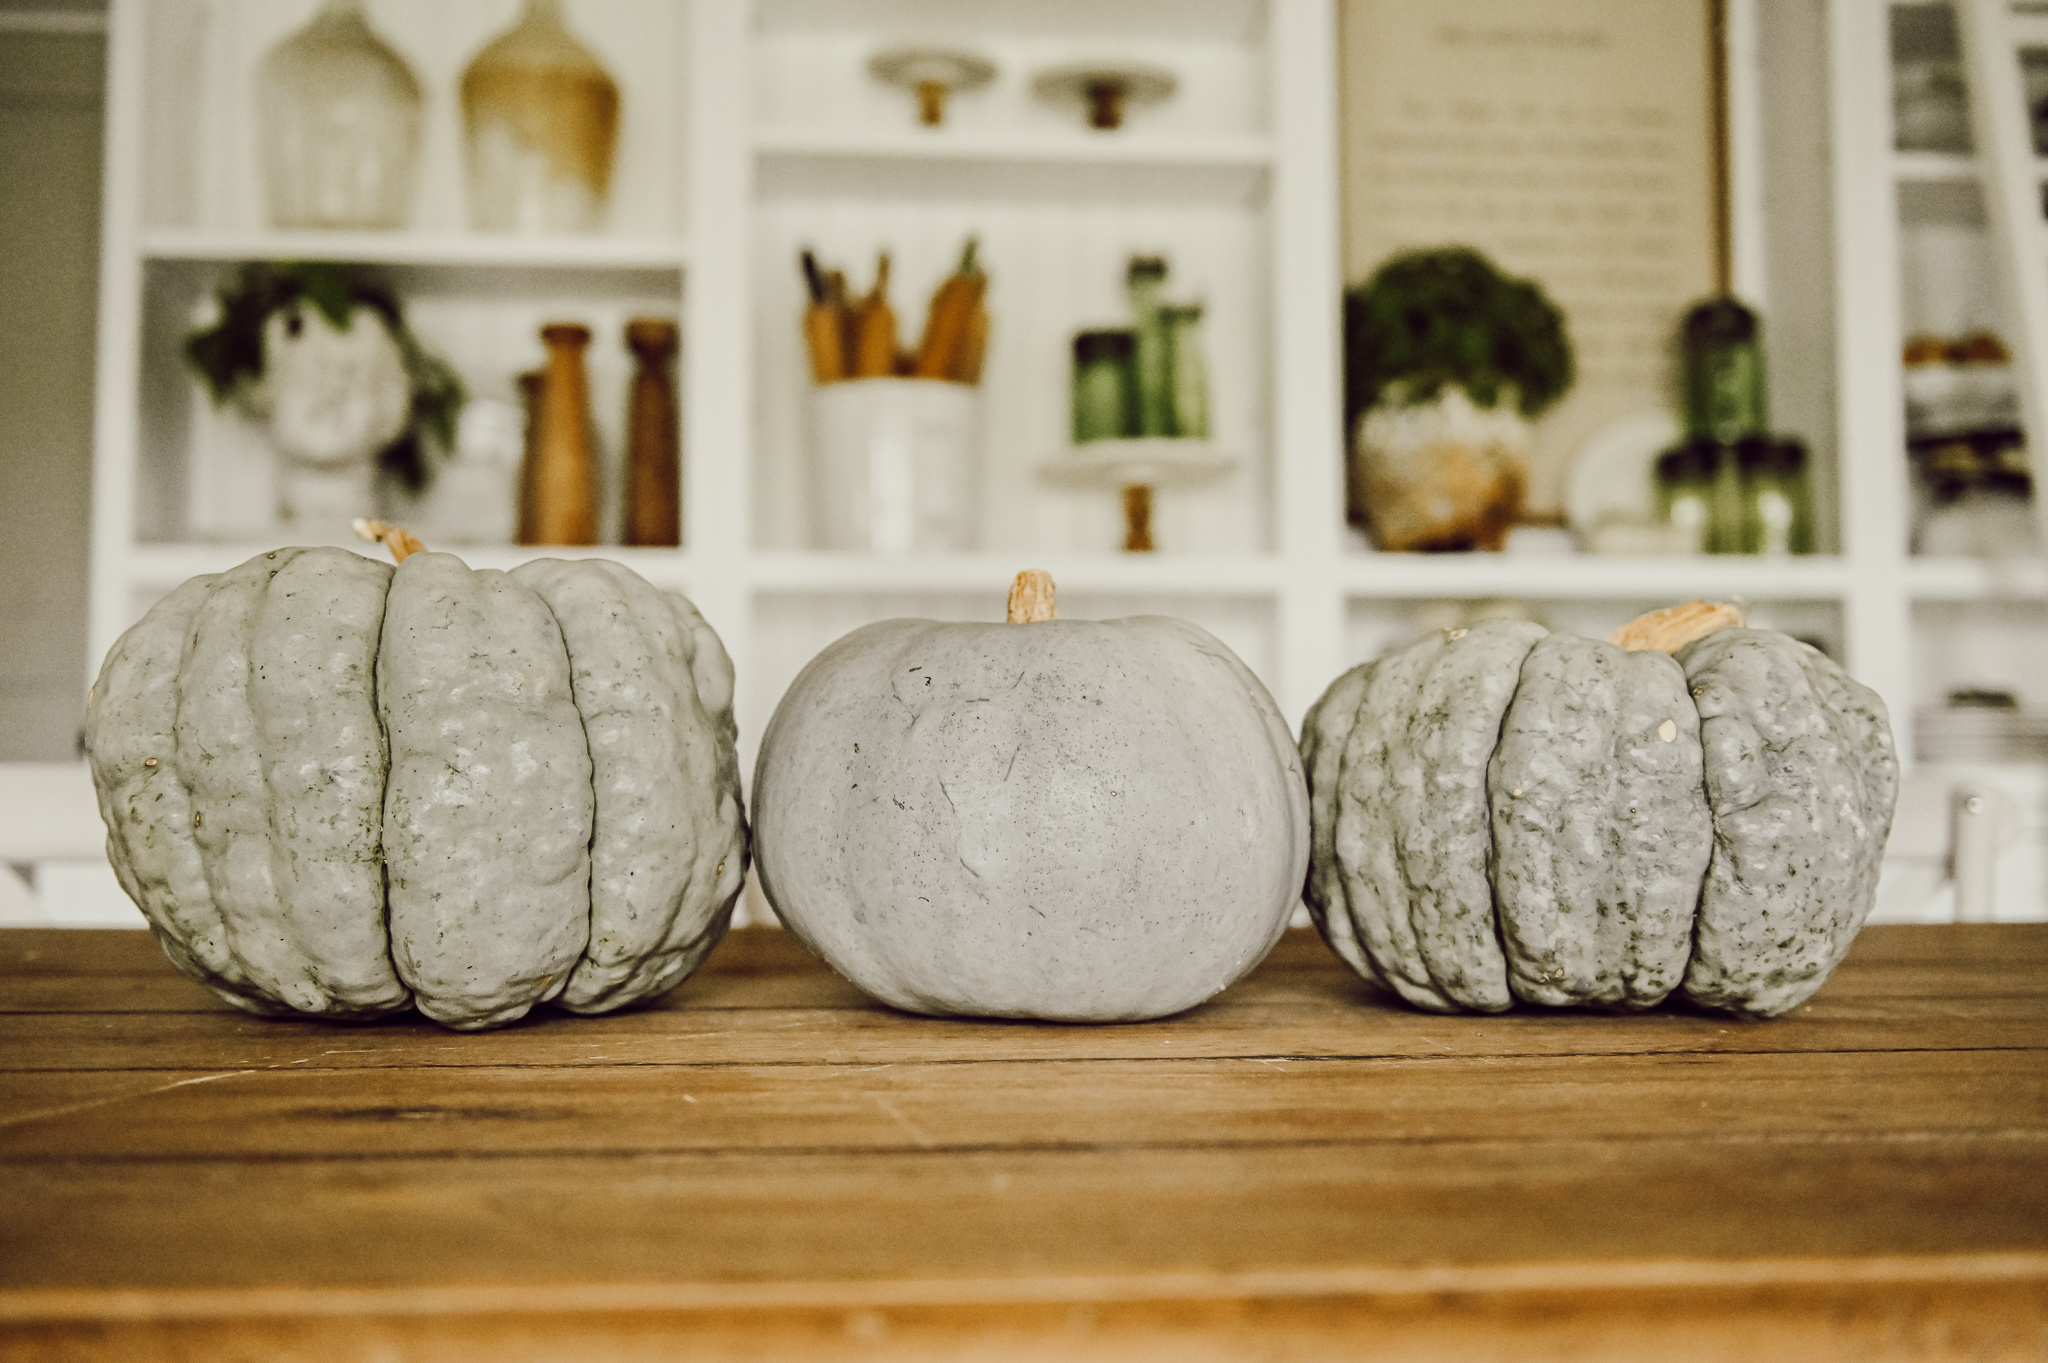 Simple Dining Room Table with pumpkins